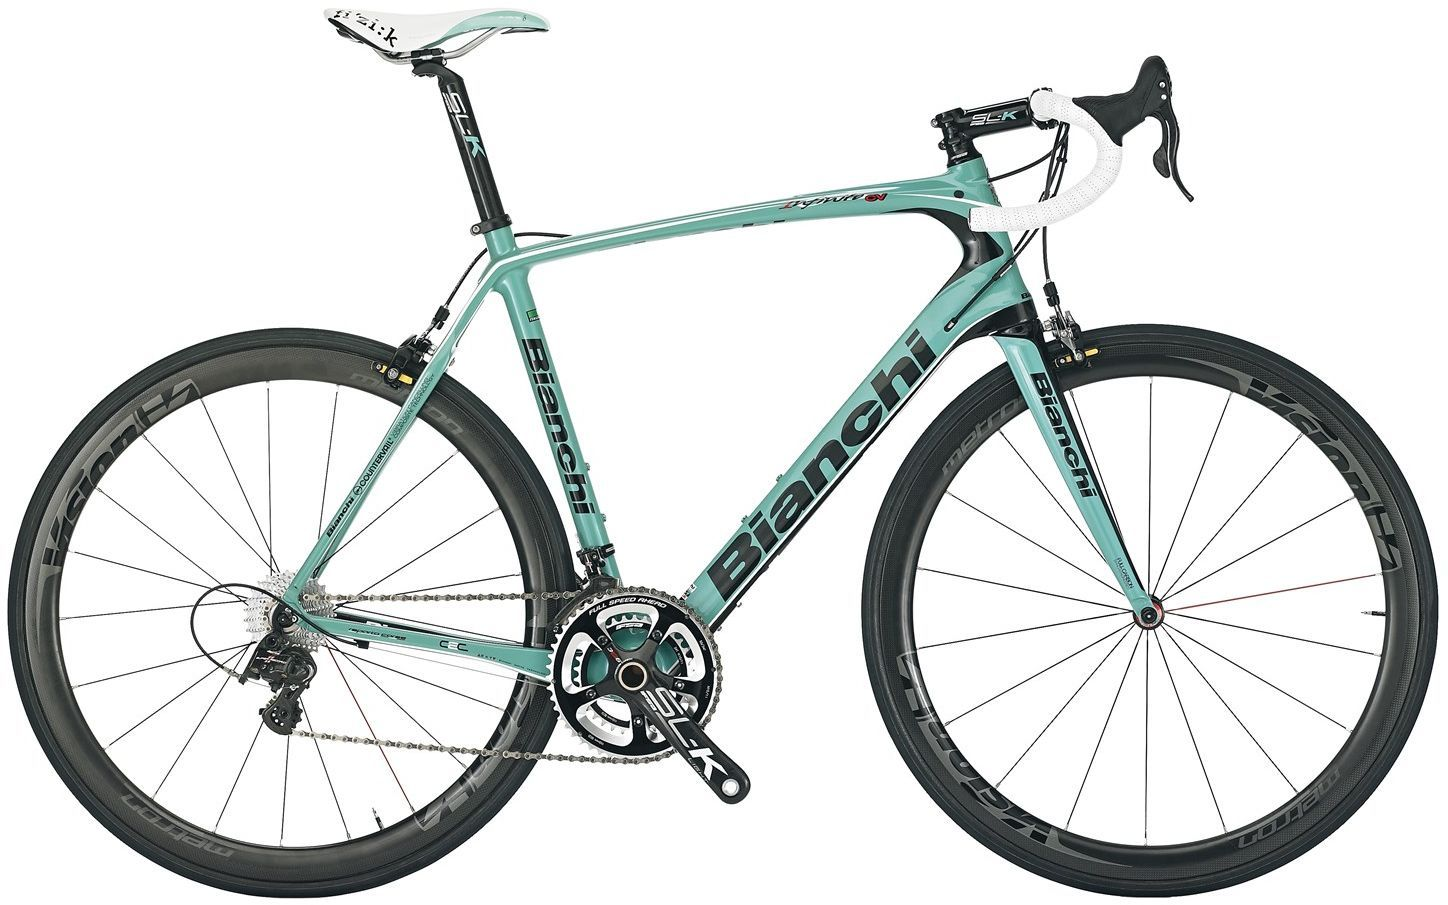 bianchi infinito cv campagnolo super record 11sp compact 2014 review